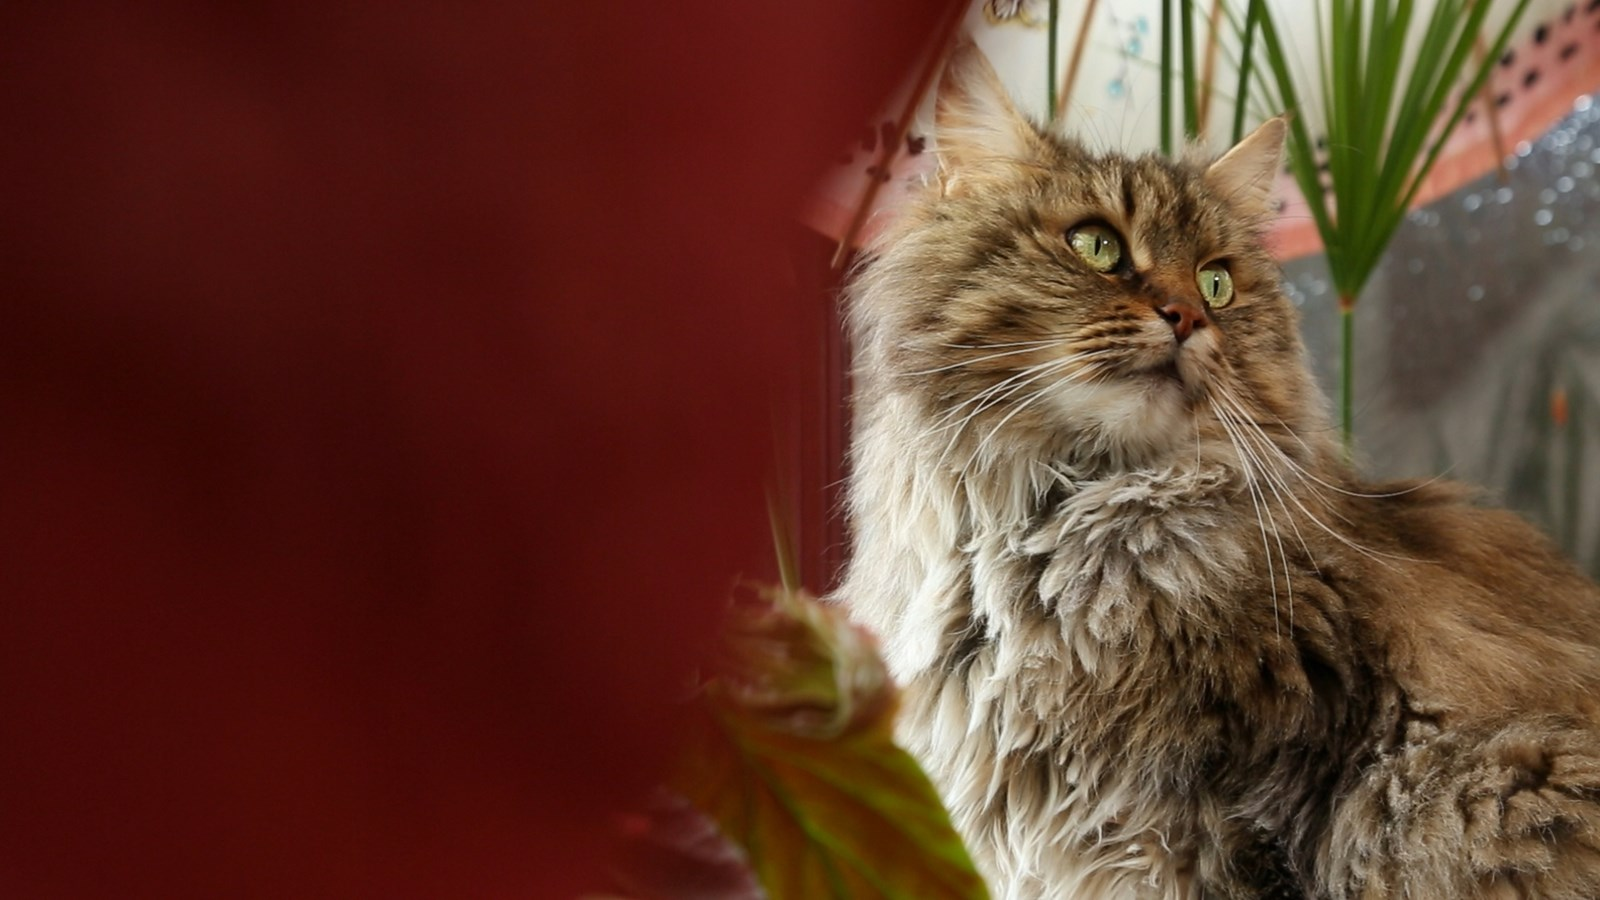 brown fluffy cat with green eyes